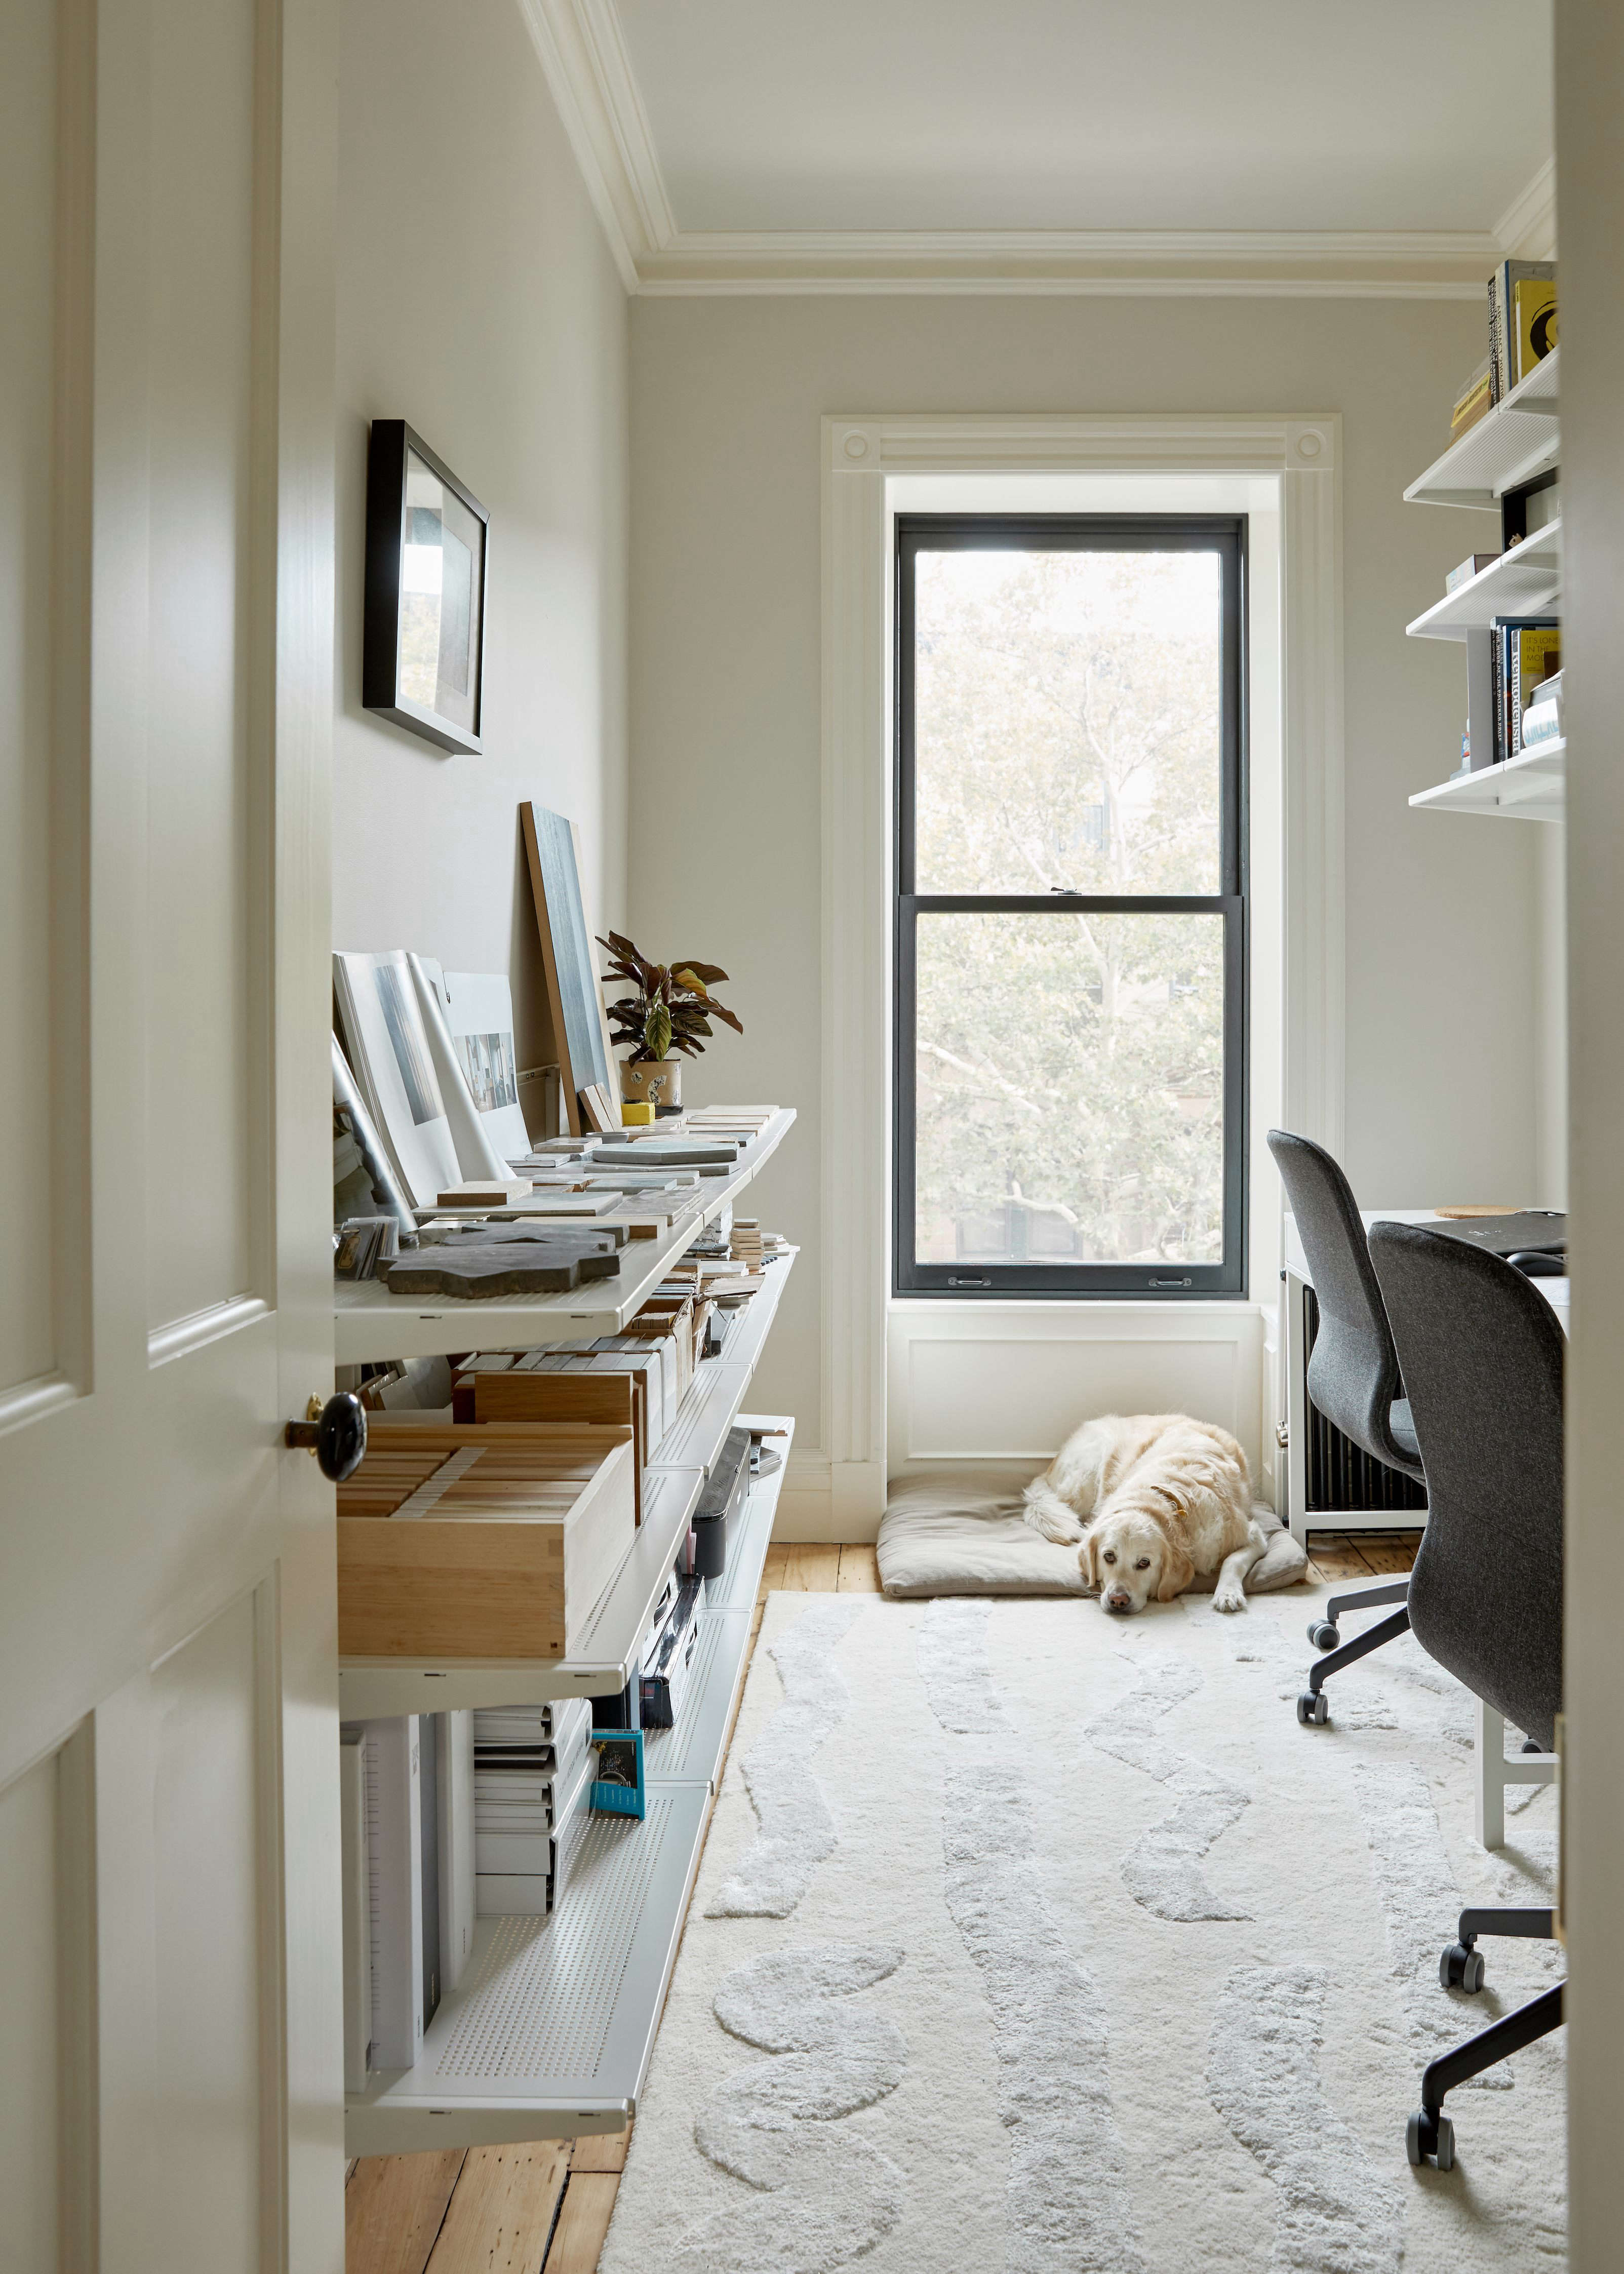 New Classics: 8 Storage Pieces from Ikea that Designers Love